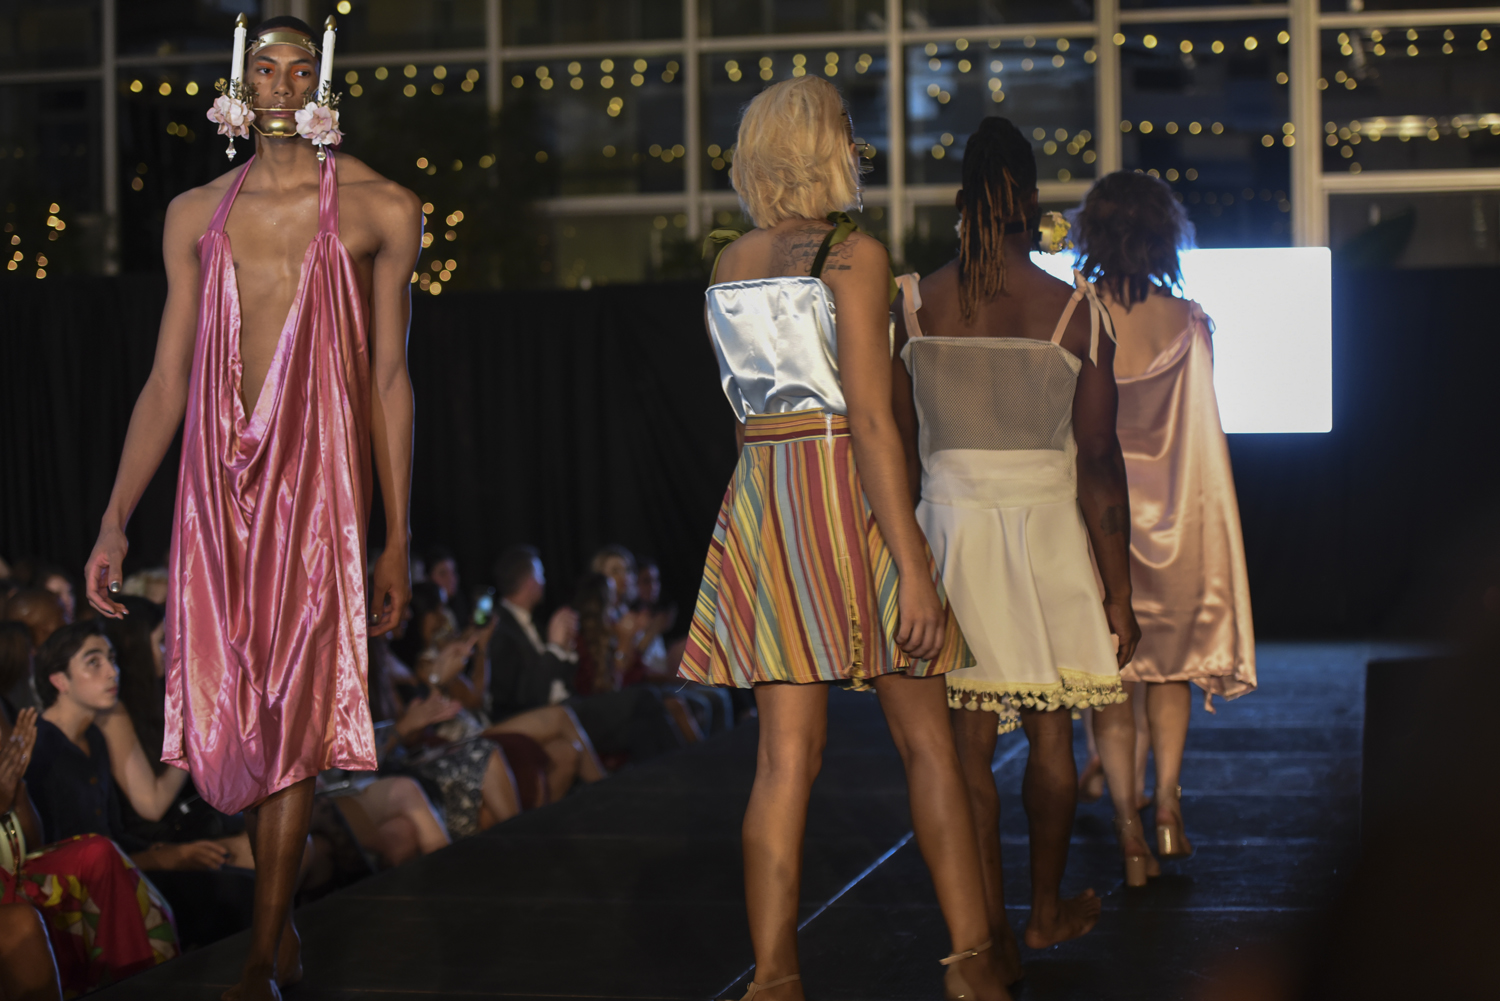 Models walk the runway in designs by Bernice Yu during Pittsburgh Fashion Week's Thursday night runway event at Wintergarden at PPG Place.